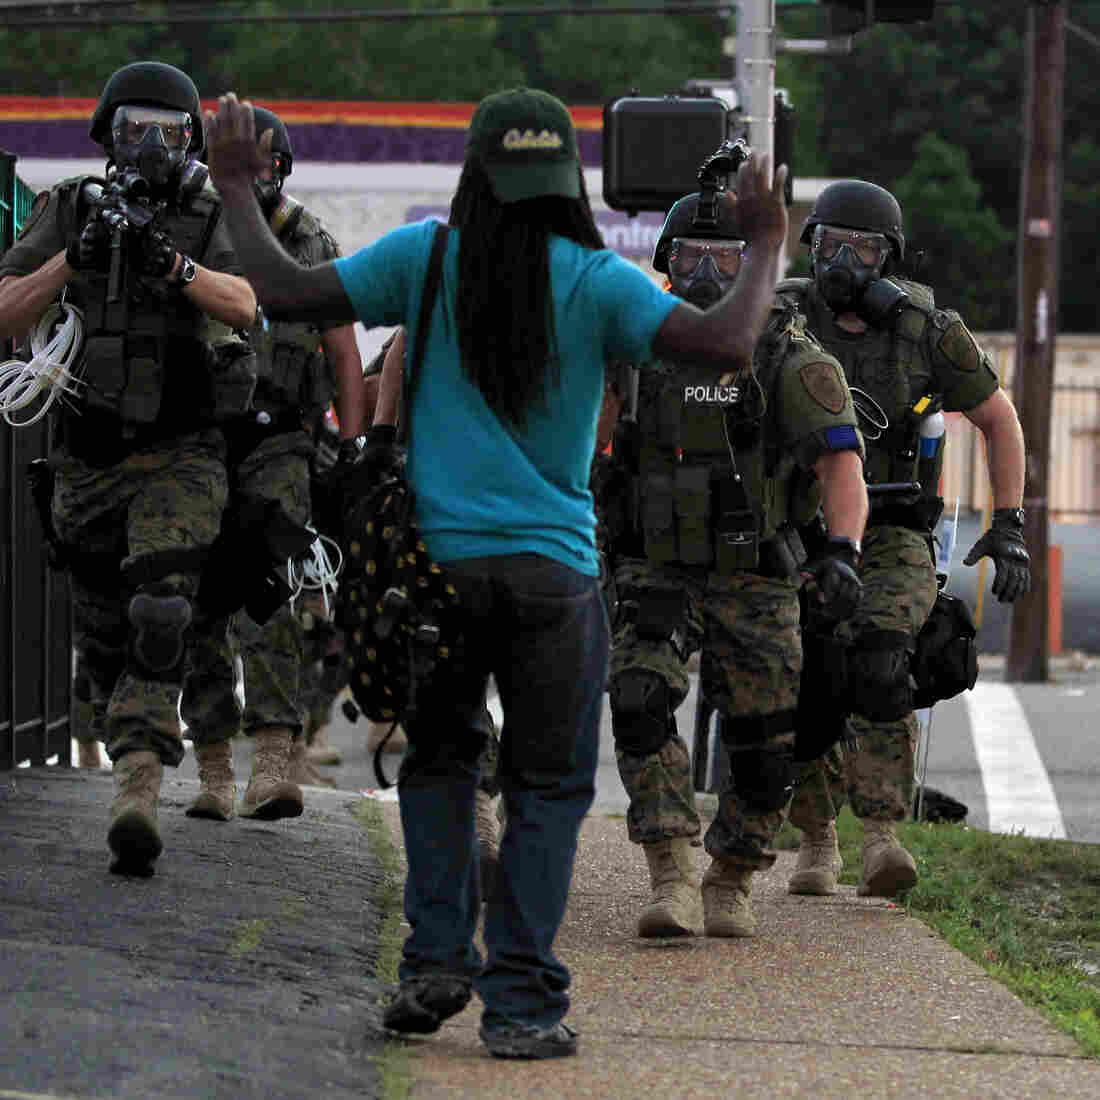 Police wearing riot gear walk toward a man with his hands raised Aug. 11 in Ferguson, Mo. Renewed calls for police departments to hire more minorities have followed the shooting there of a black man by a white police officer.